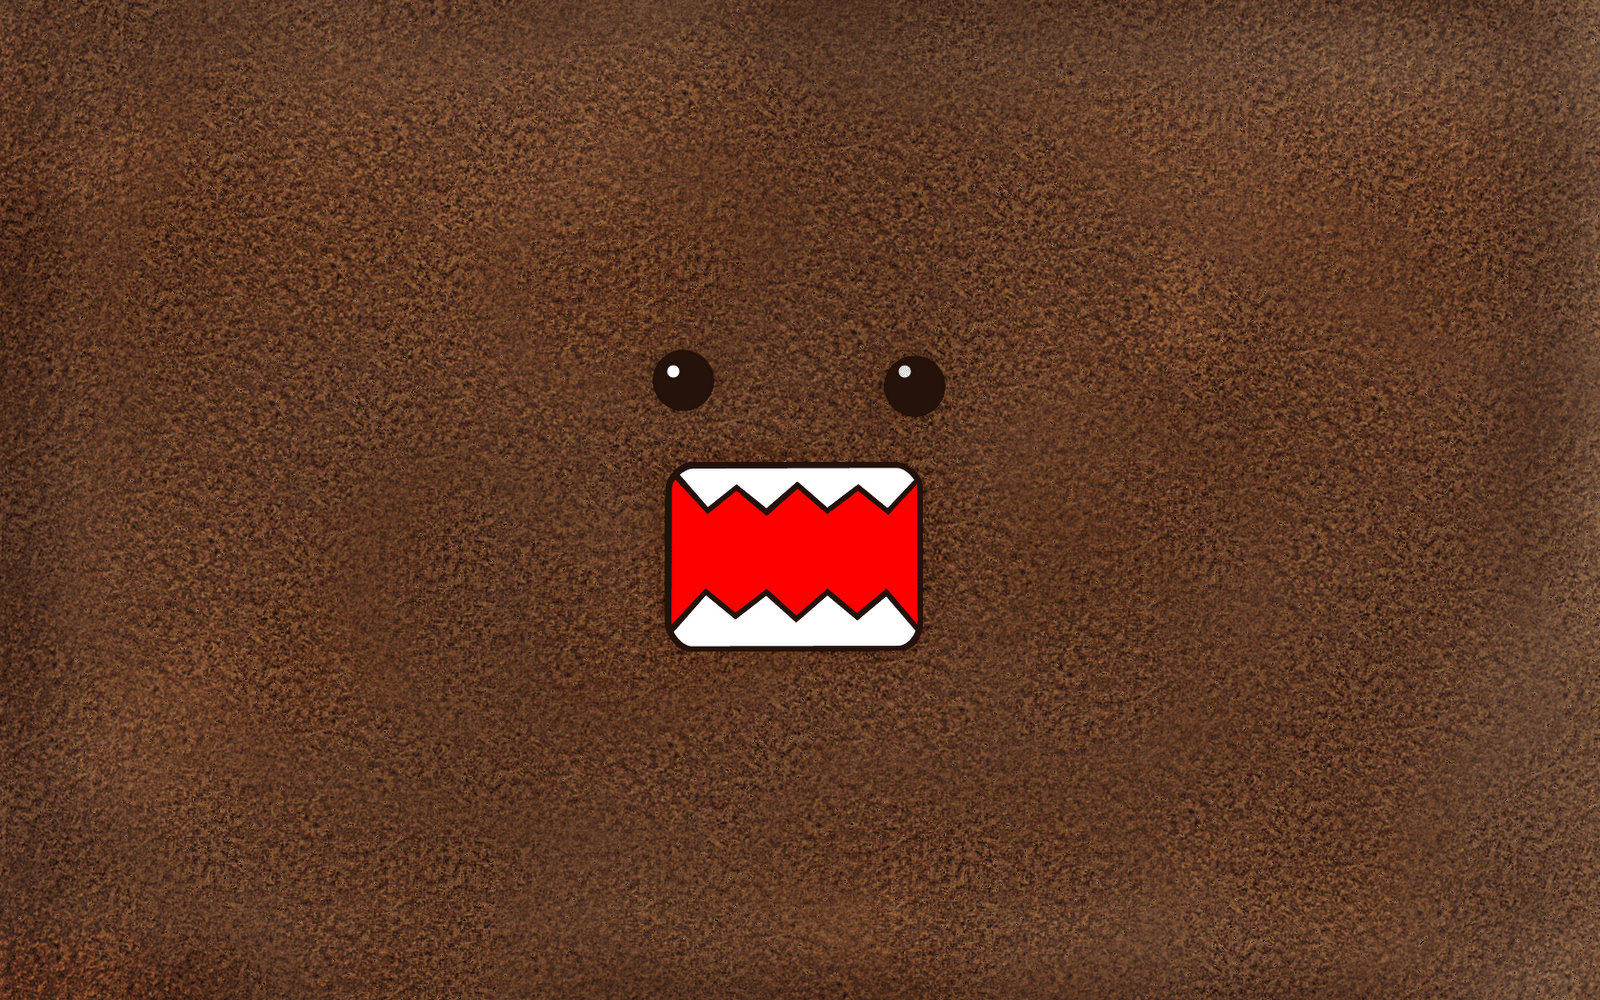 Download Domo Wallpaper 1600x1000 Wallpoper 319834 1600x1000